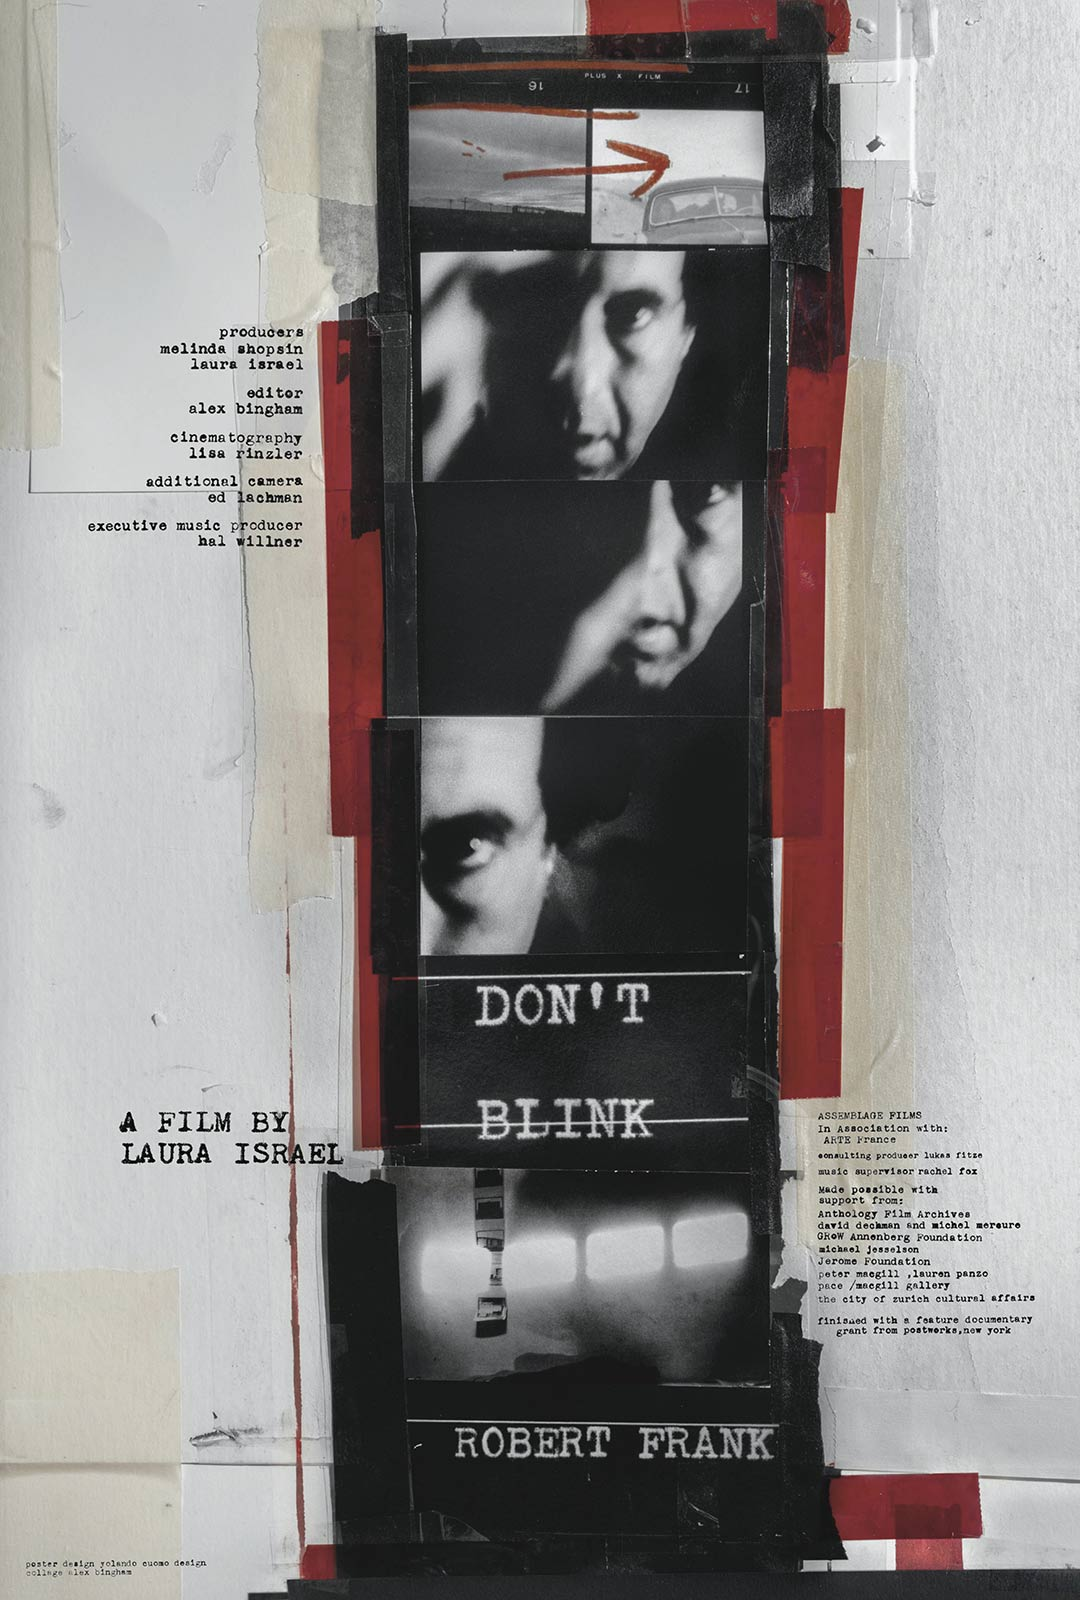 Don't Blink - Robert Frank Poster #1